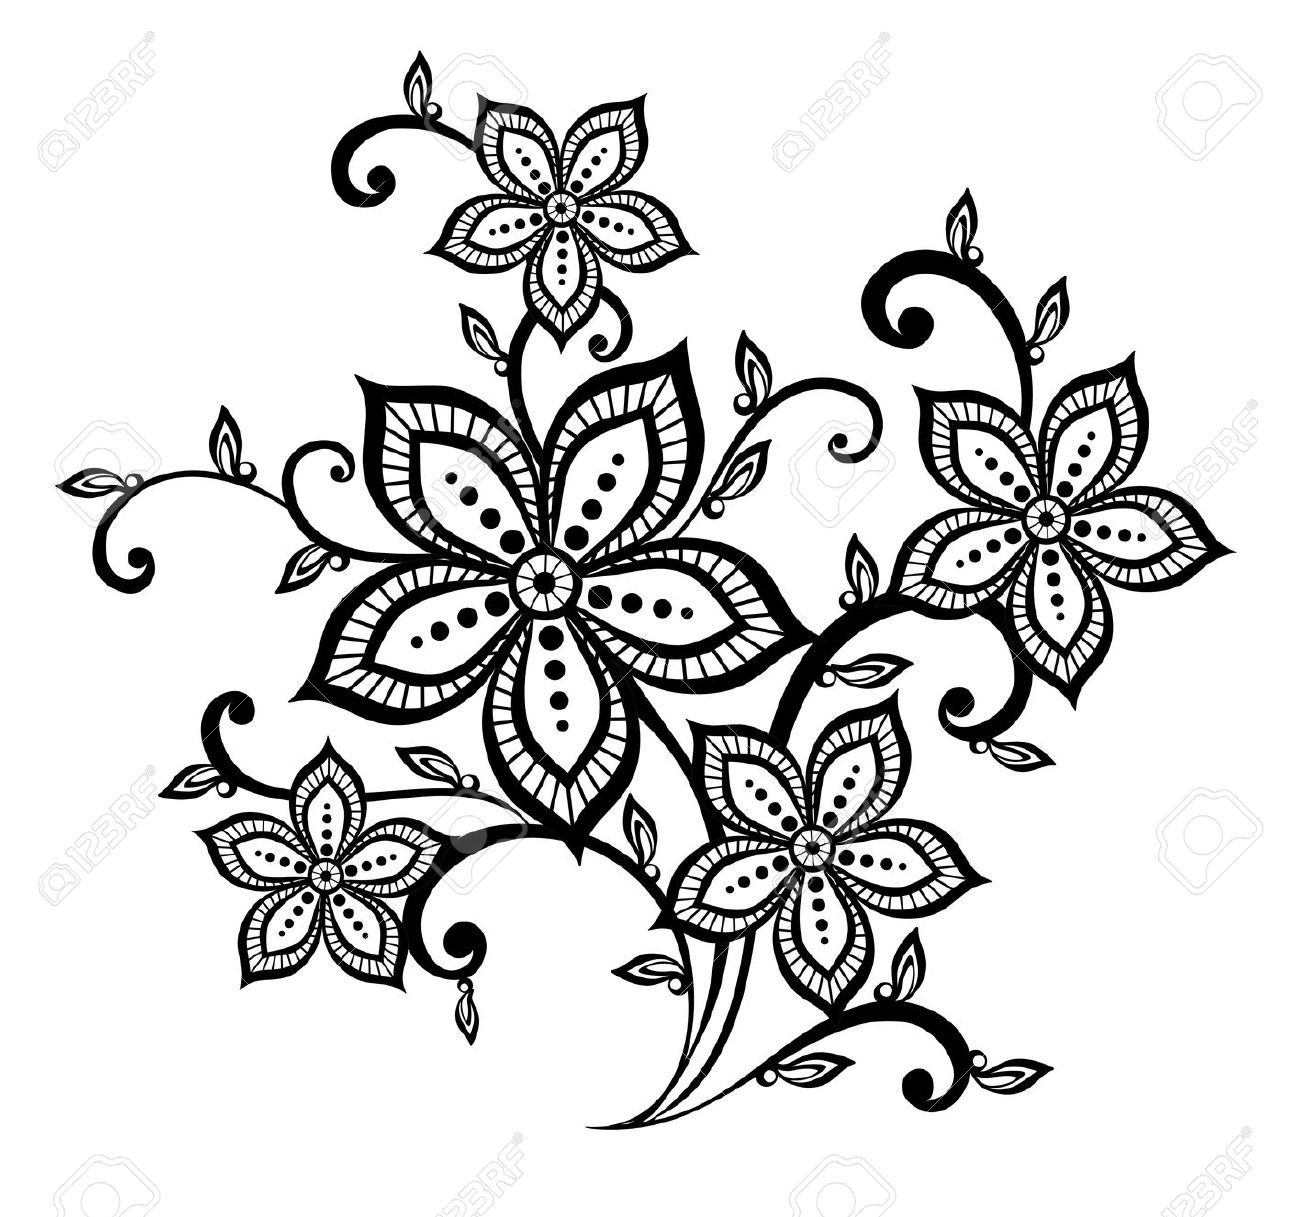 Beautiful black and white floral pattern design element - Flower black and white design ...